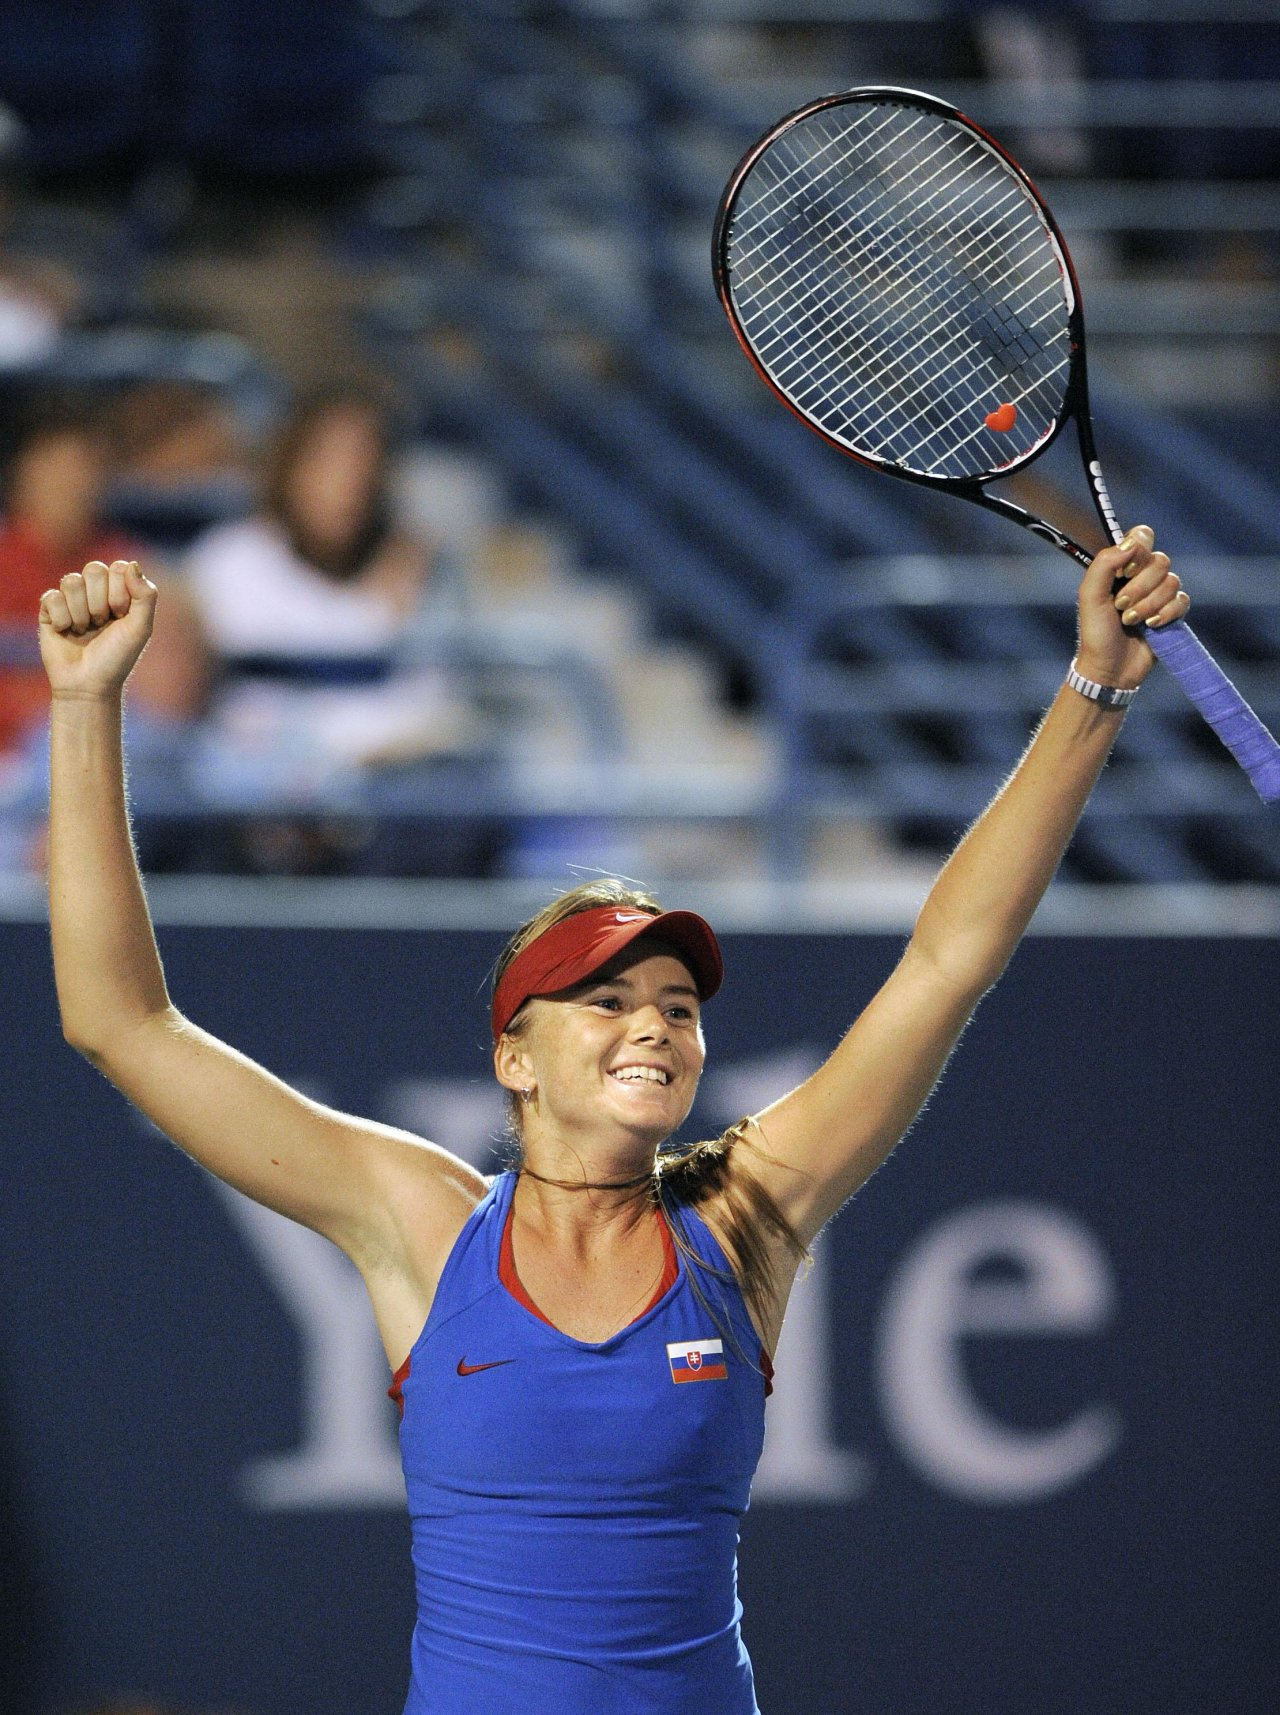 Daniela Hantuchova leaked wallpapers